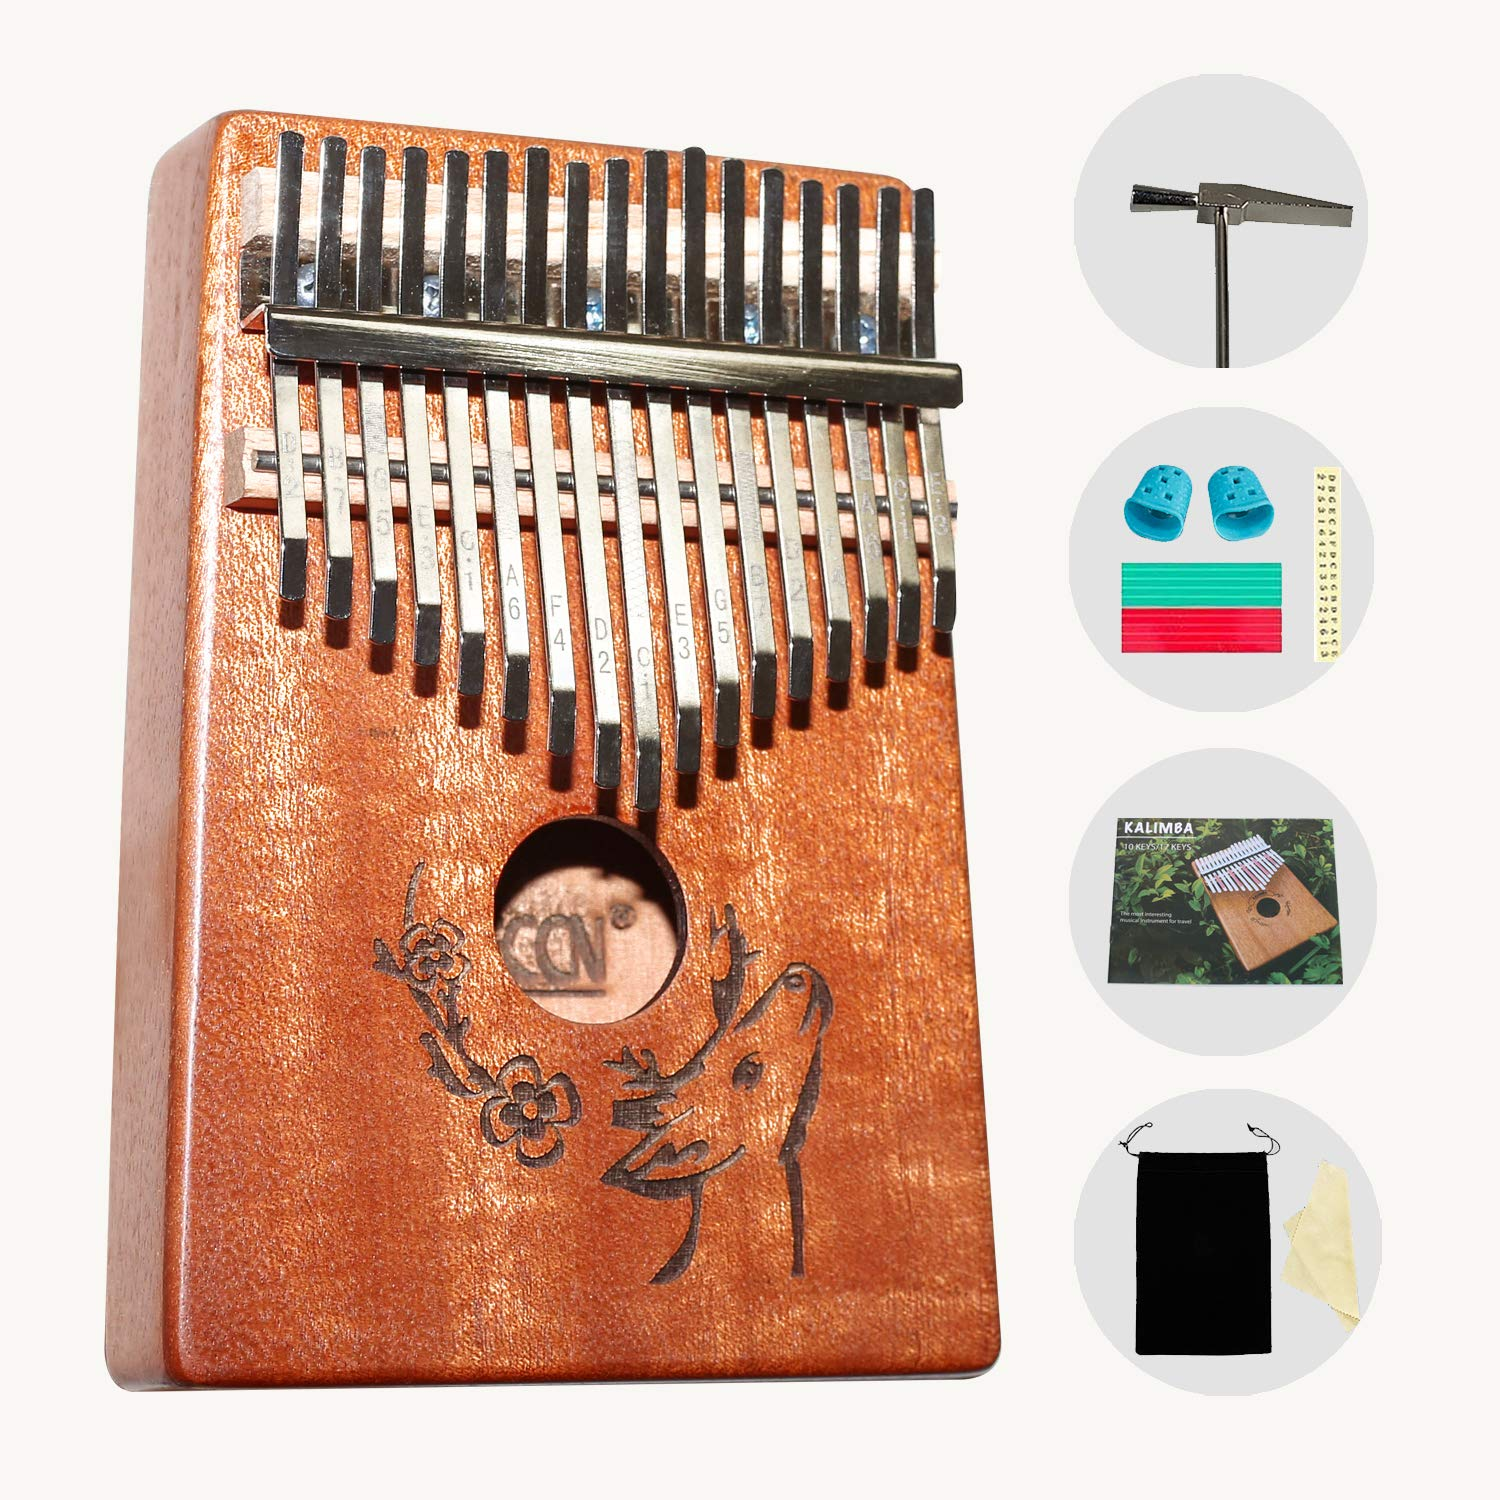 AECCN Kalimba 17 Keys Thumb Piano - Pocket Size With Study Instruction and Tune-Hammer & Simple Sheet Music, Christmas Day Birthday Gifts Idea for Kids Adults Beginners, Professionals (Deer) by AECCN (Image #1)